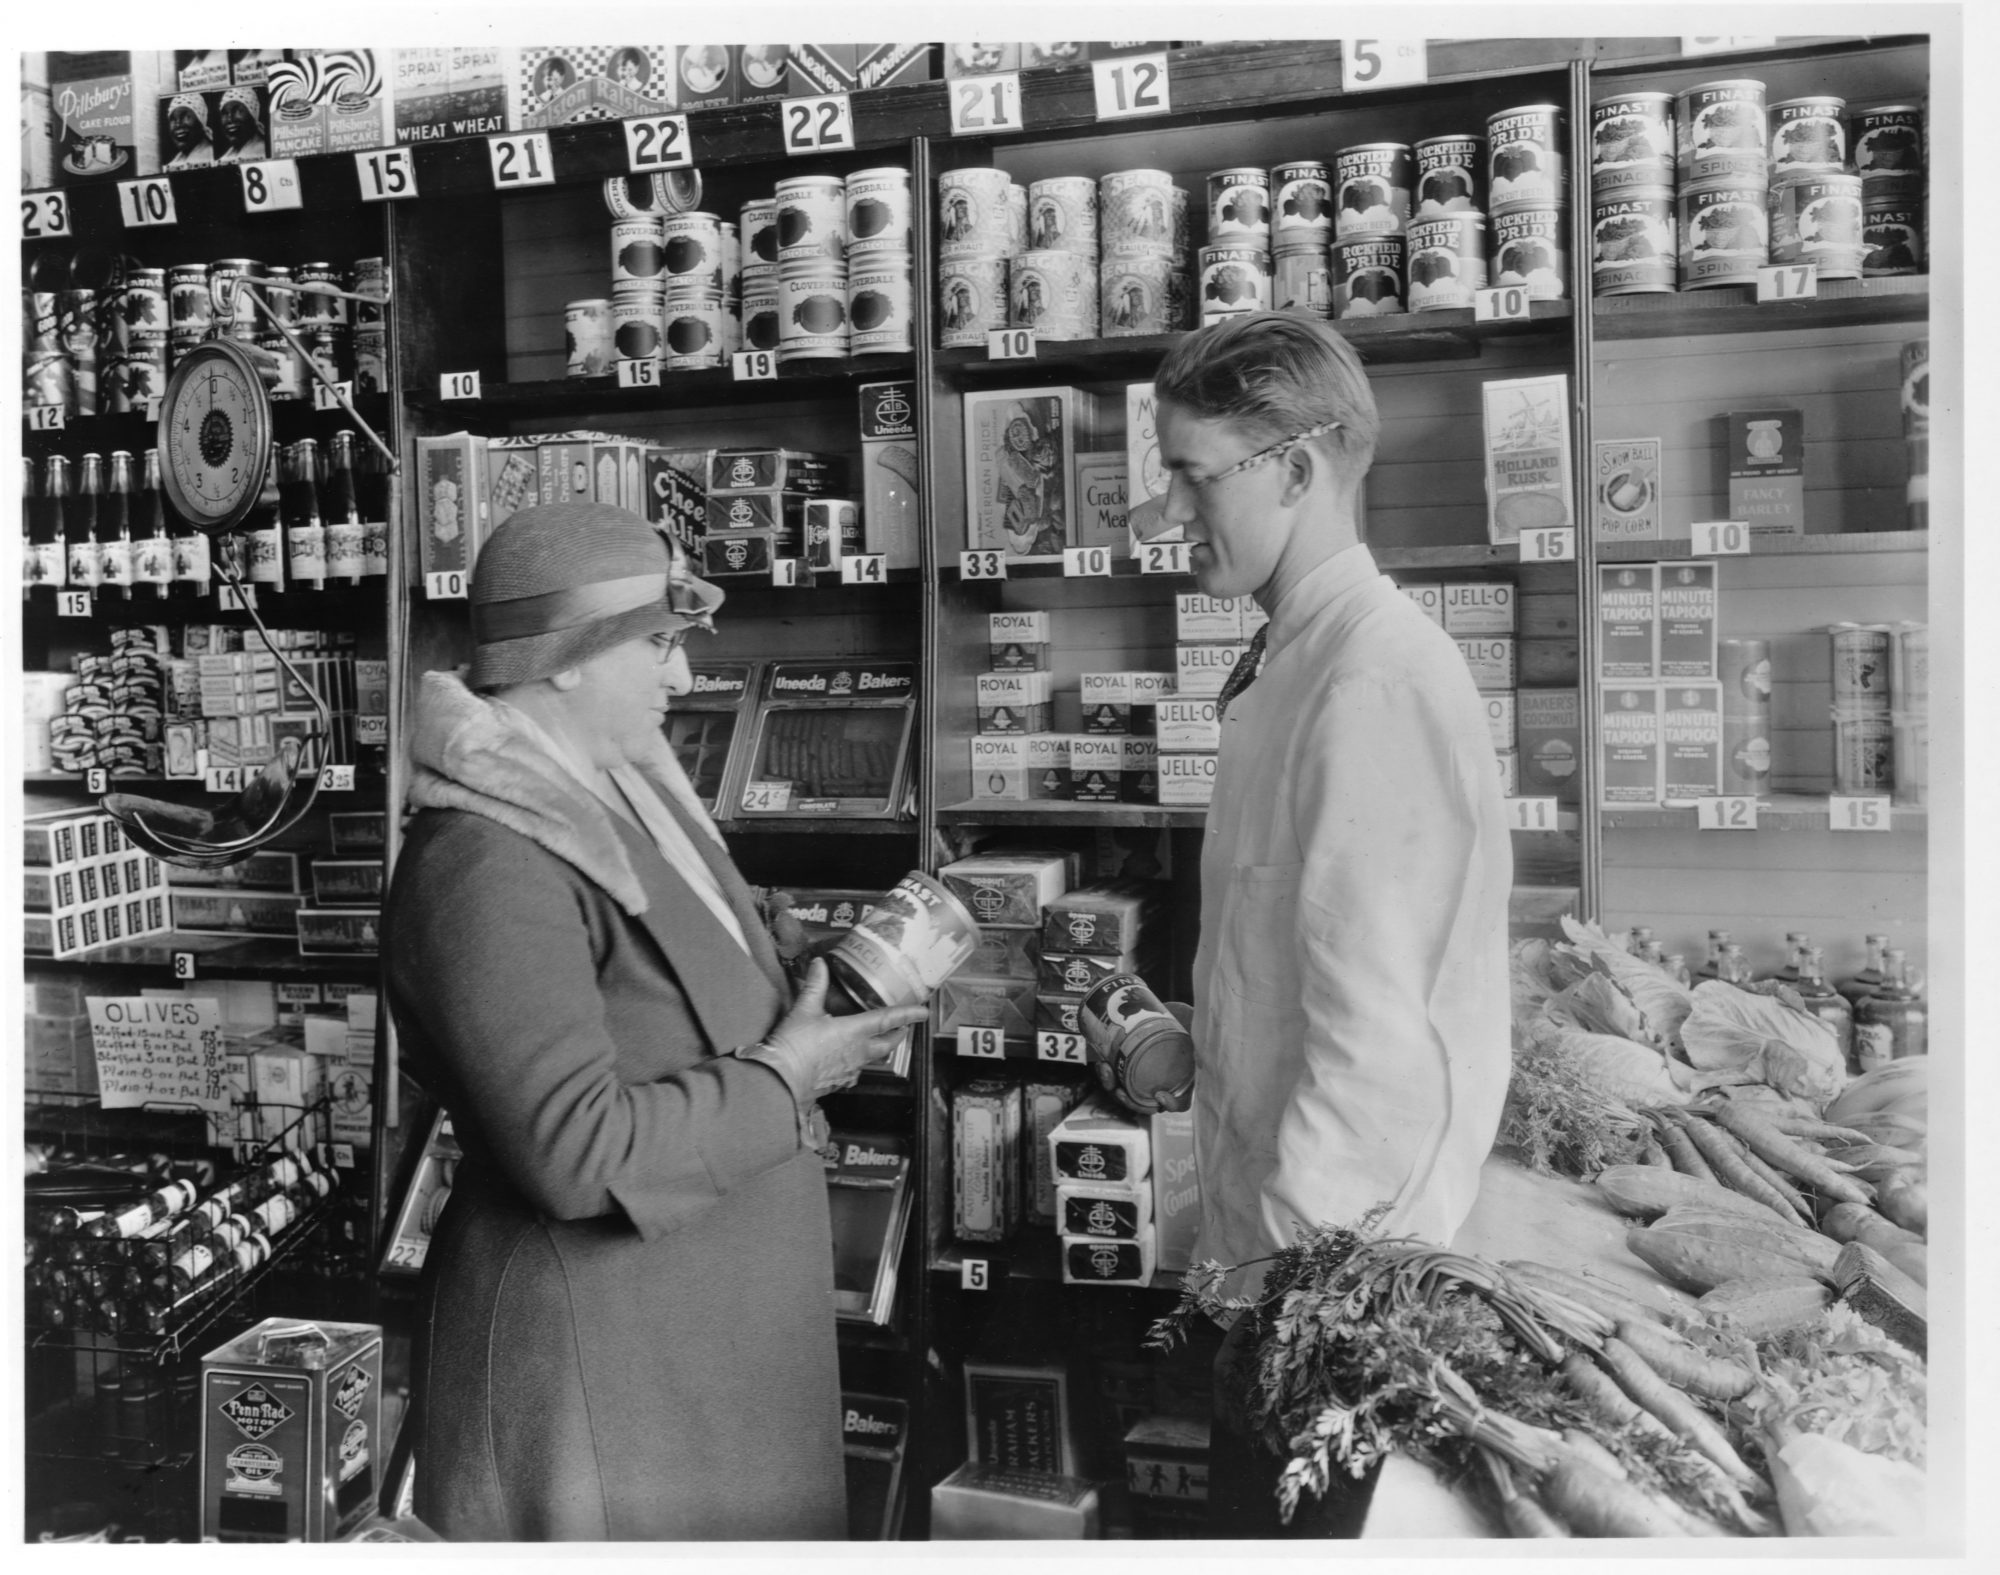 Grocer and Shopper in 1925